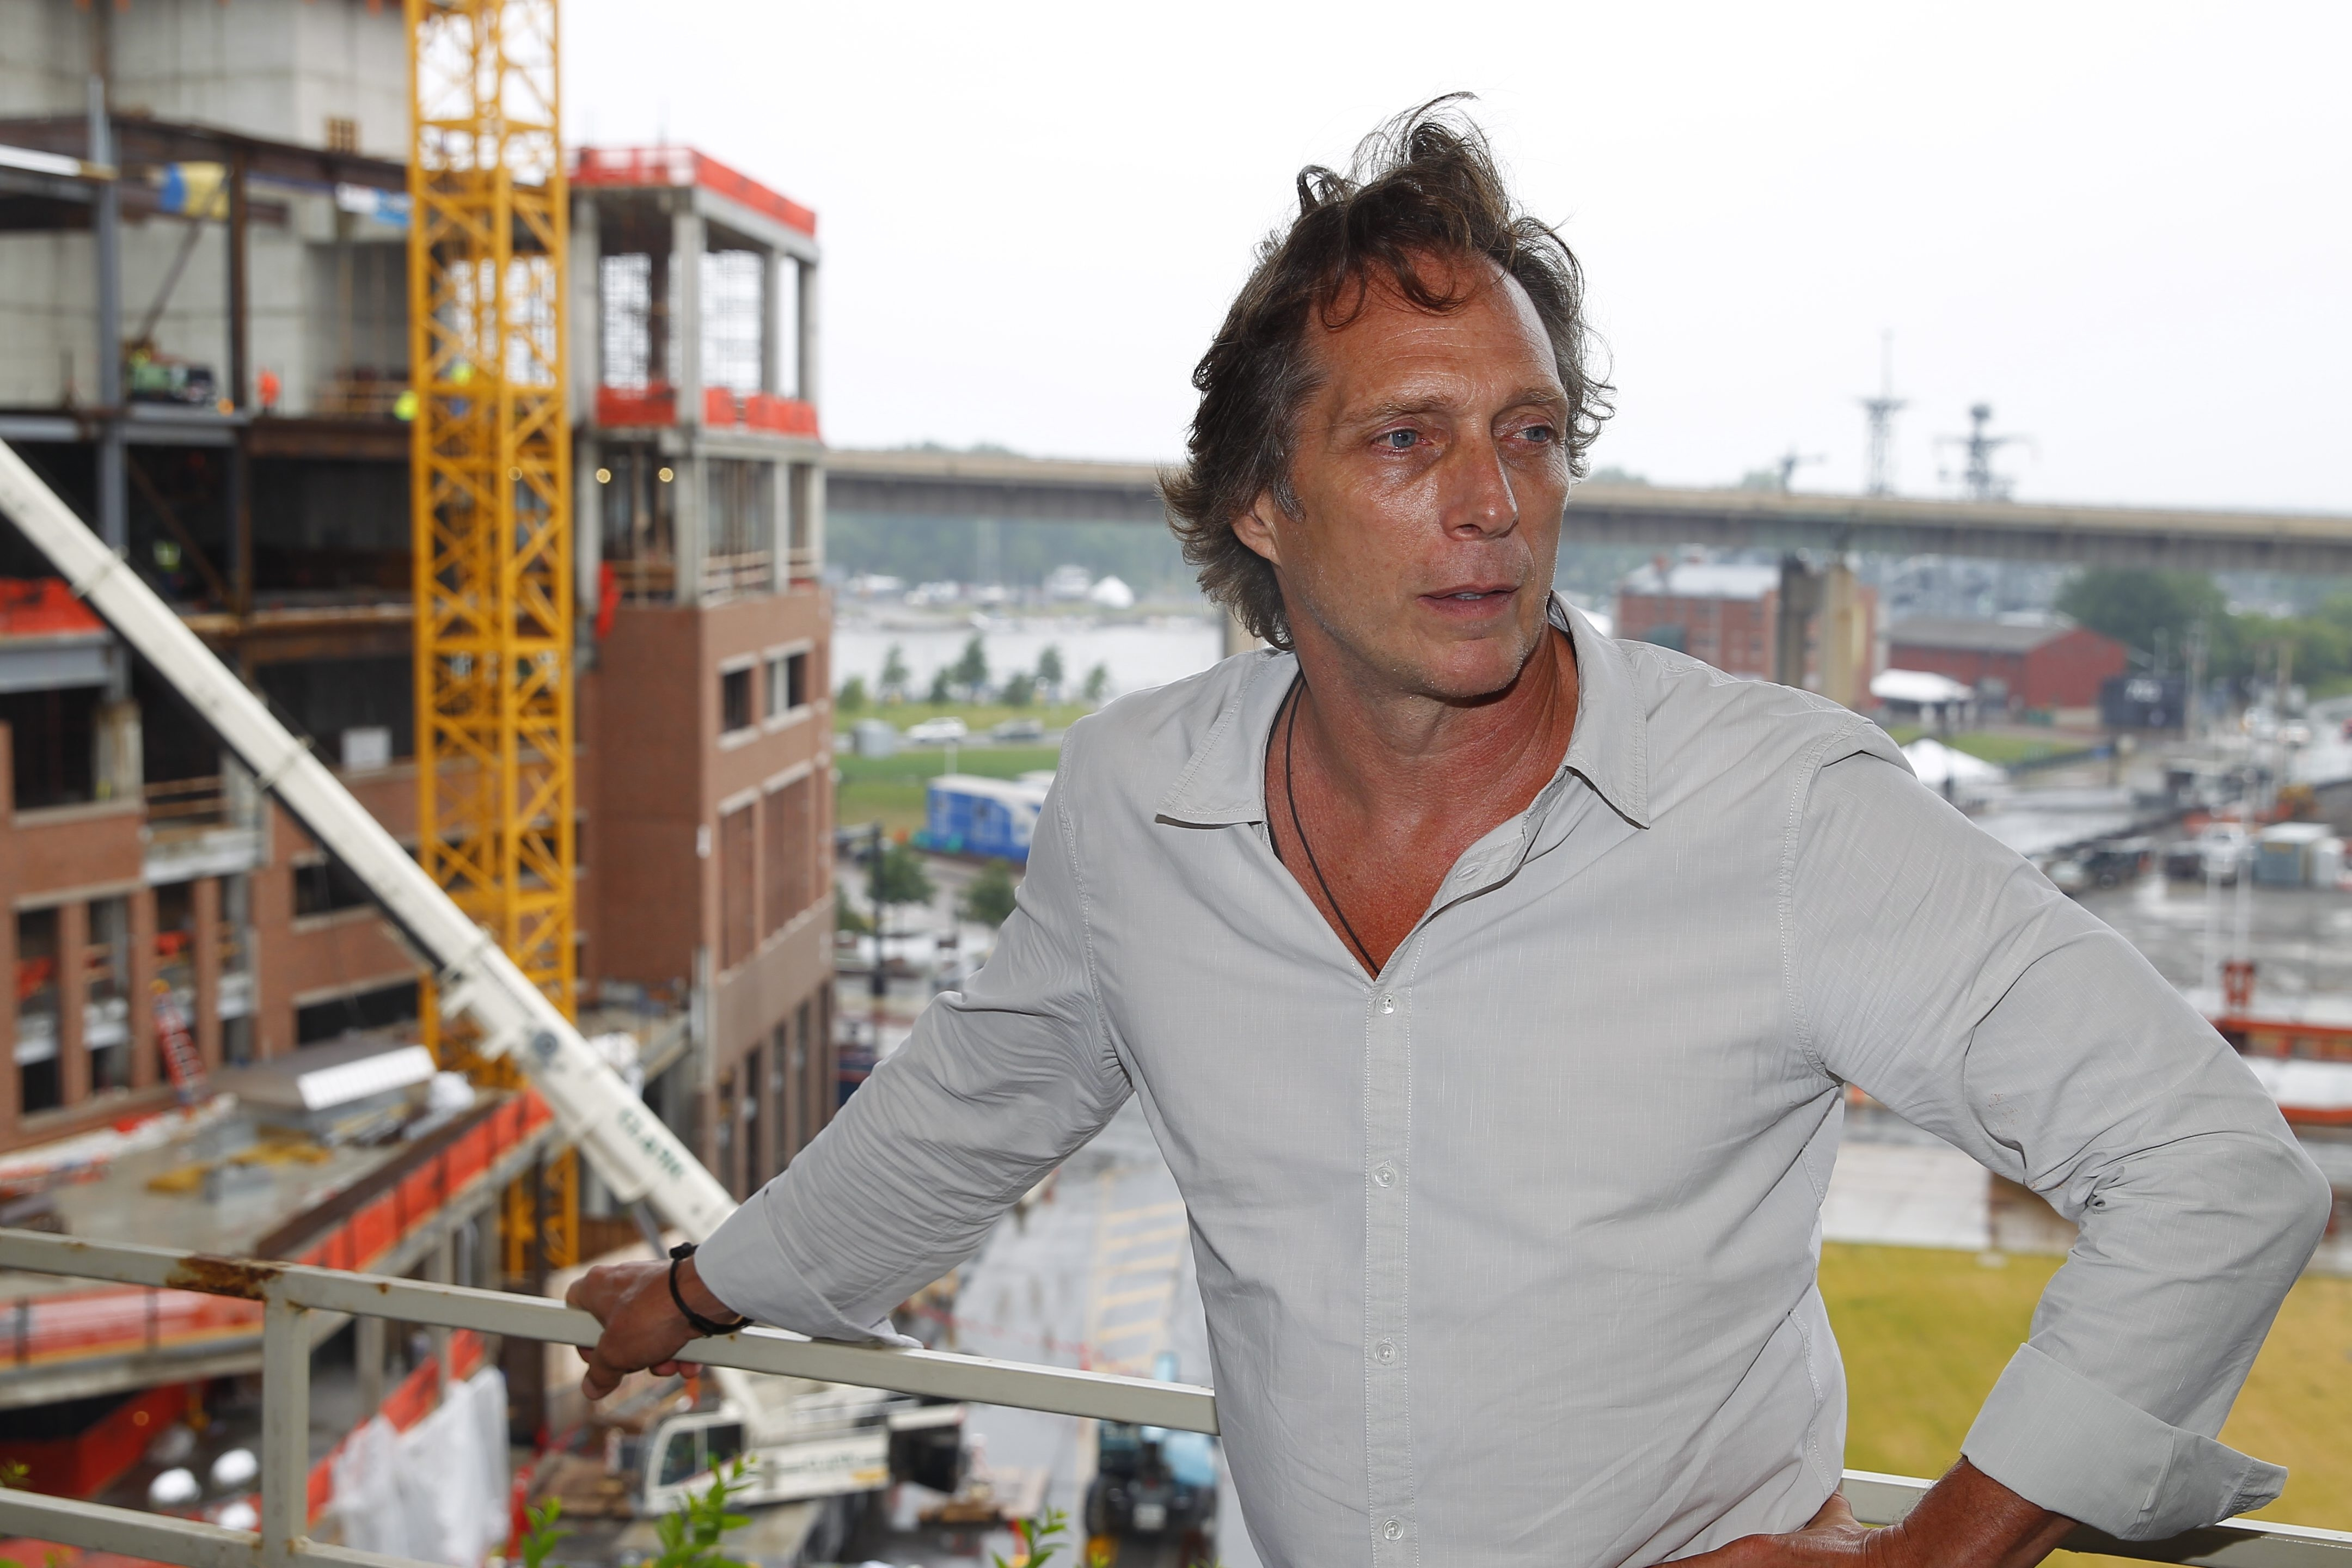 Former Cheektowaga resident William Fichtner, one of Hollywood's most recognized actors, is home this summer drumming up interest and support for an independent film he would like to make in Western New York. (John Hickey/Buffalo News)